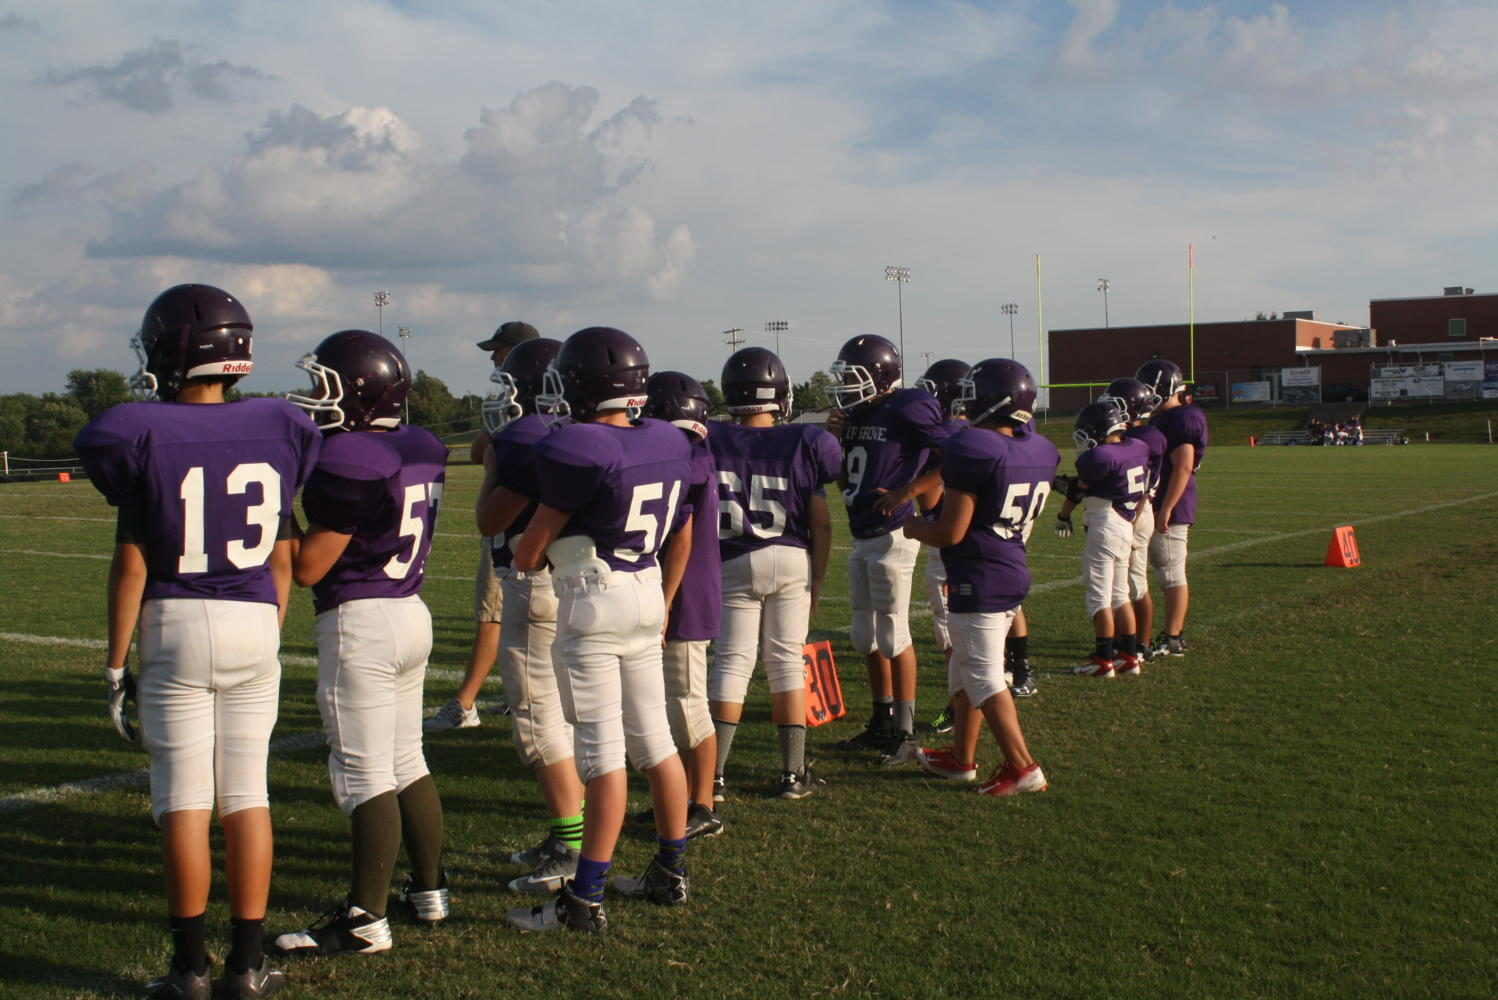 Middle School Football players prepare for practice